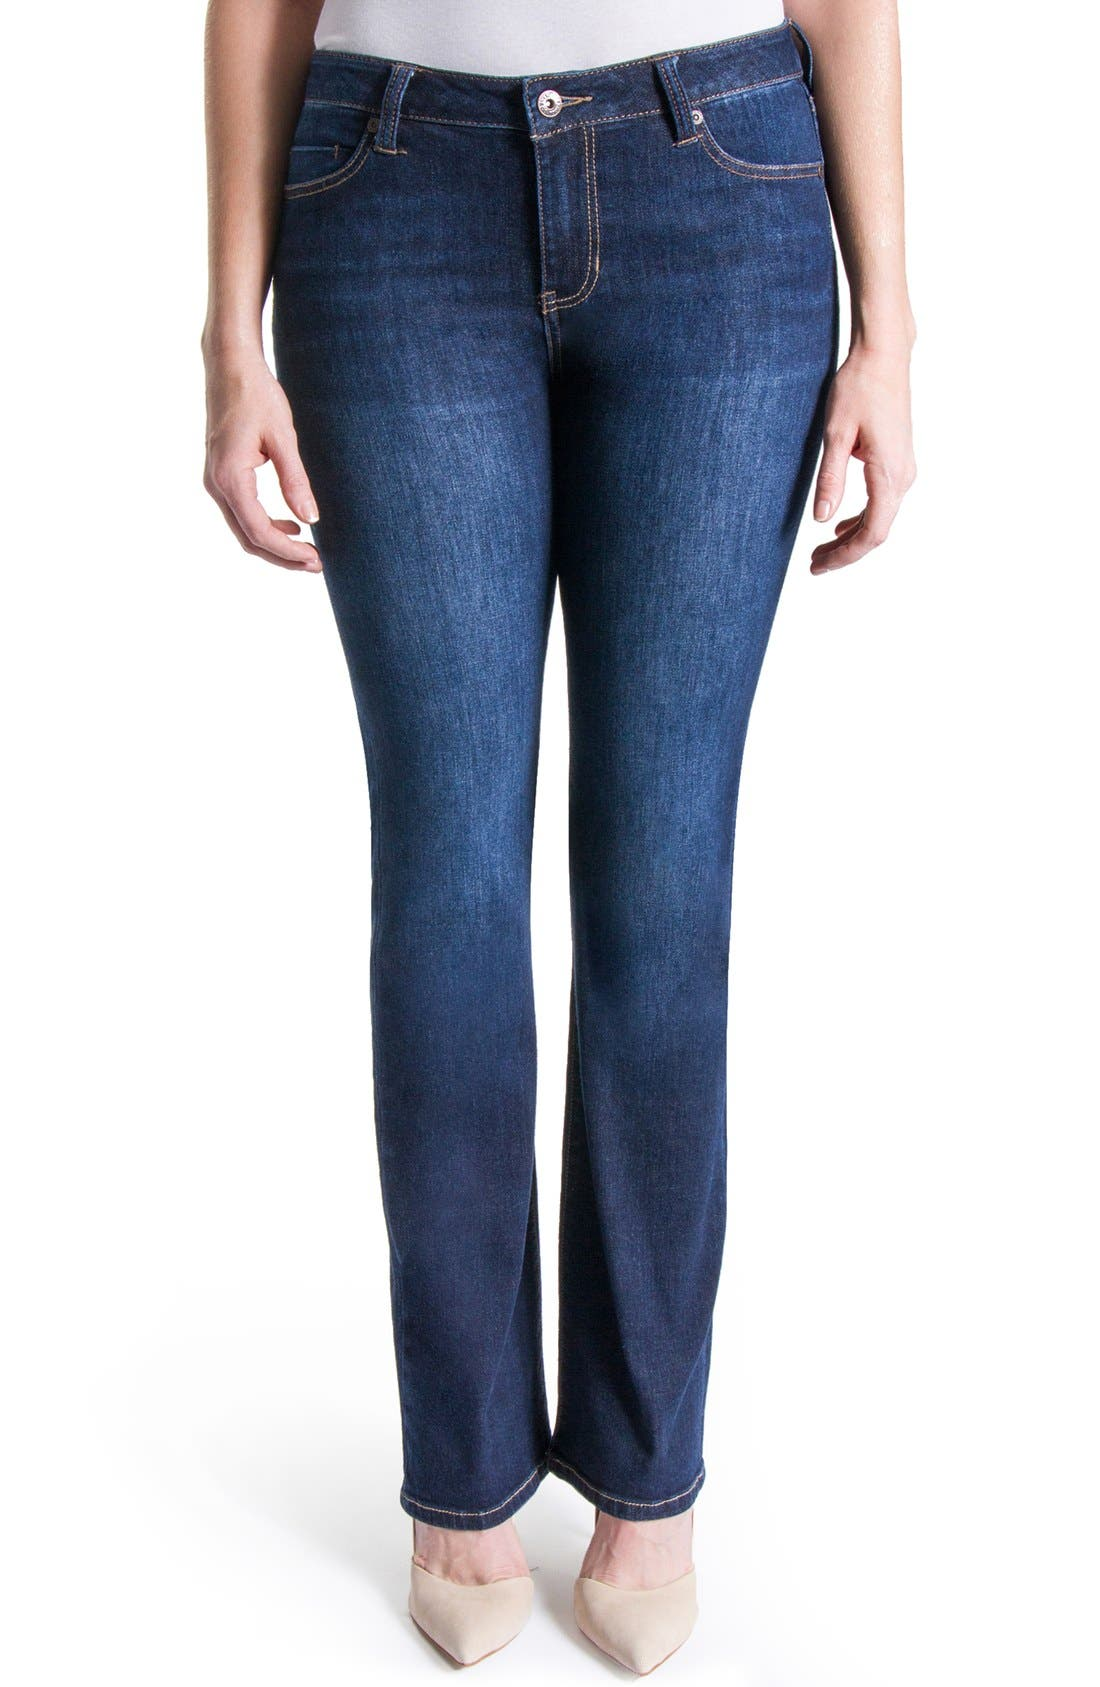 Alternate Image 1 Selected - Liverpool Jeans Company 'Lucy' Stretch Bootcut Jeans (Vintage Super Dark) (Regular & Petite)